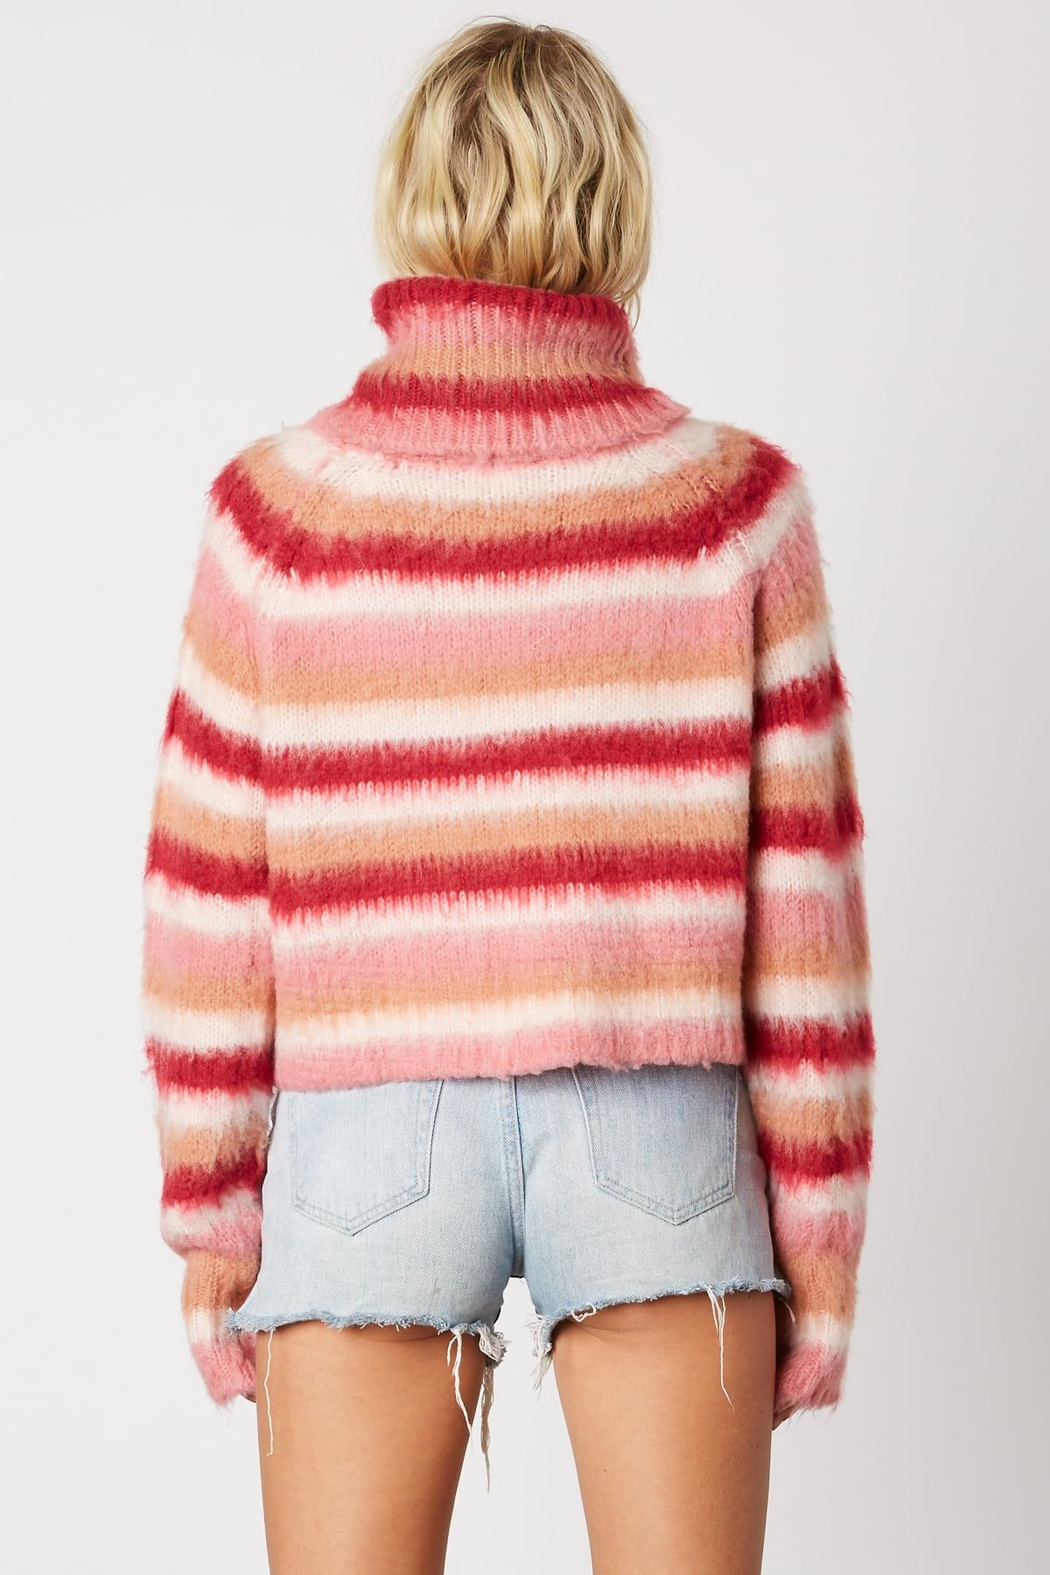 Cotton Candy LA Striped Pink Sweater - Front Full Image